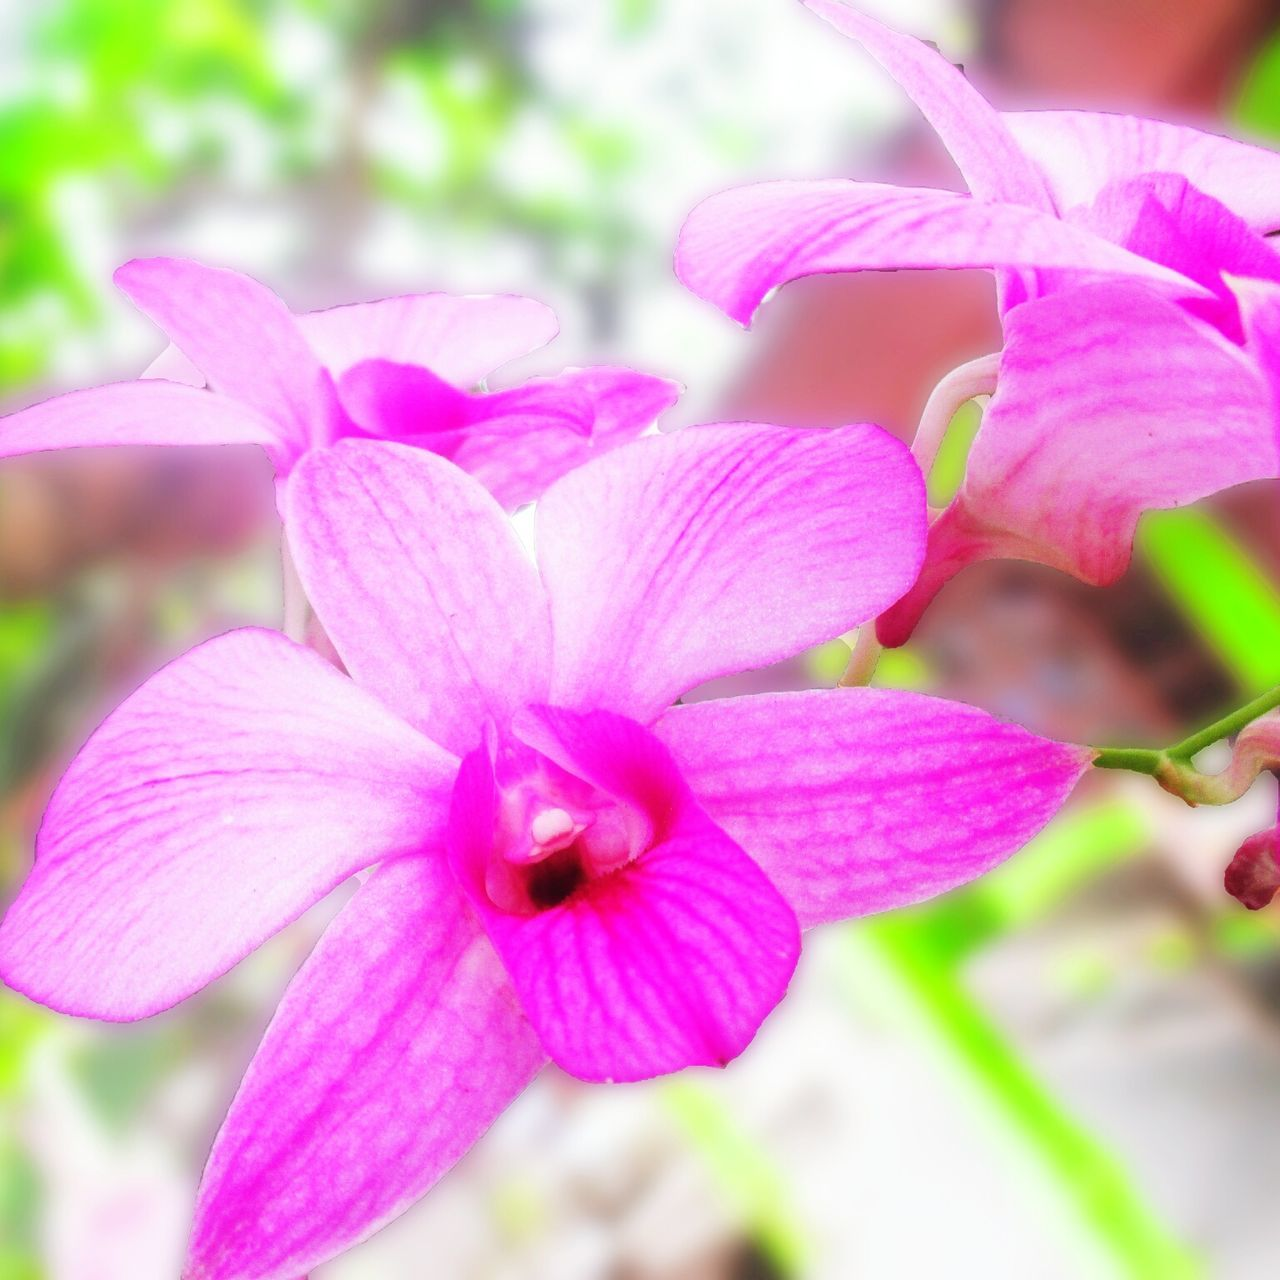 Flower Nature Pink Color Flower Head Orchid Beauty In Nature Close-up Purple Outdoors Fragility No People Freshness Day People Of EyeEm Portrait Eye4photography  Eyeemphoto East Java Nature EyeEm Gallery Java Indonesia Tree Popular EyeEm Architecture